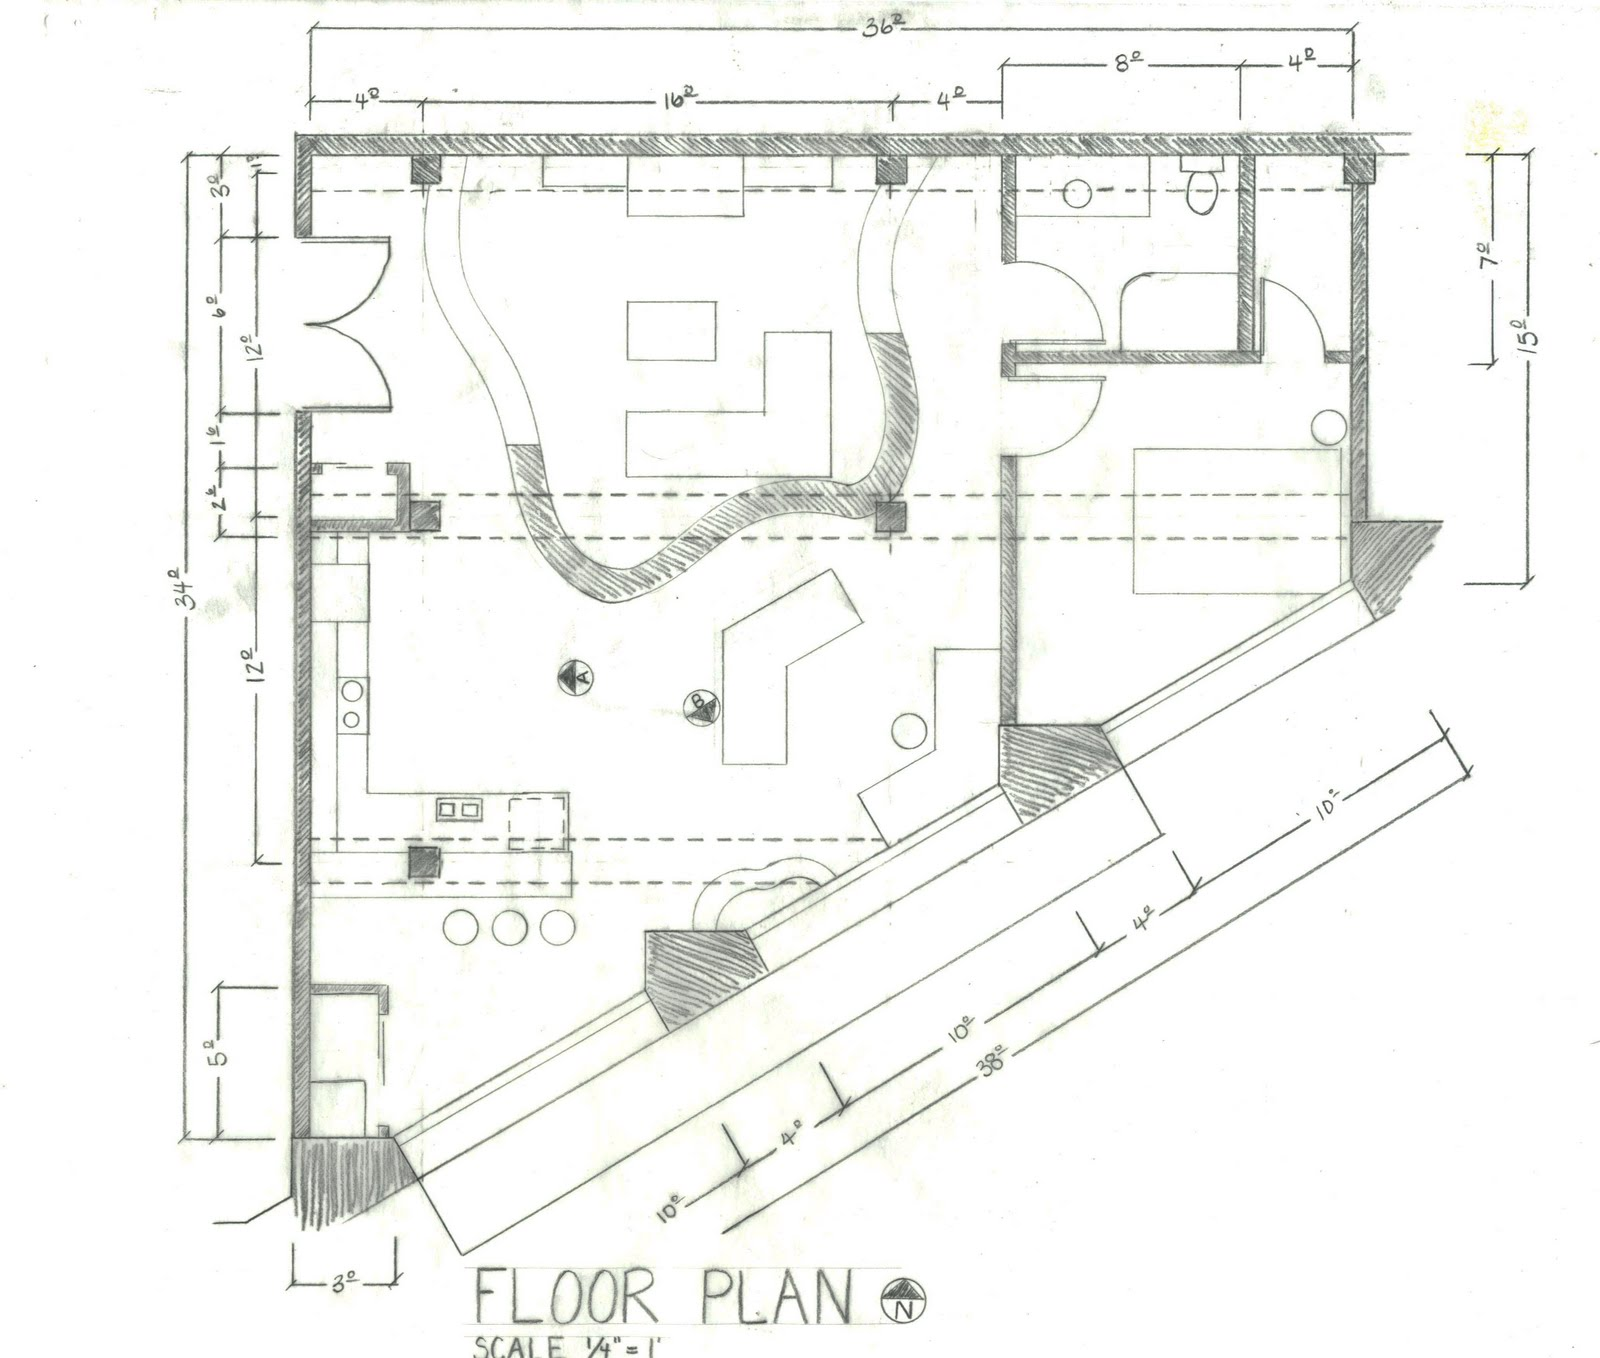 Shannon Stewart: Floor Plan and Reflected Ceiling Plan